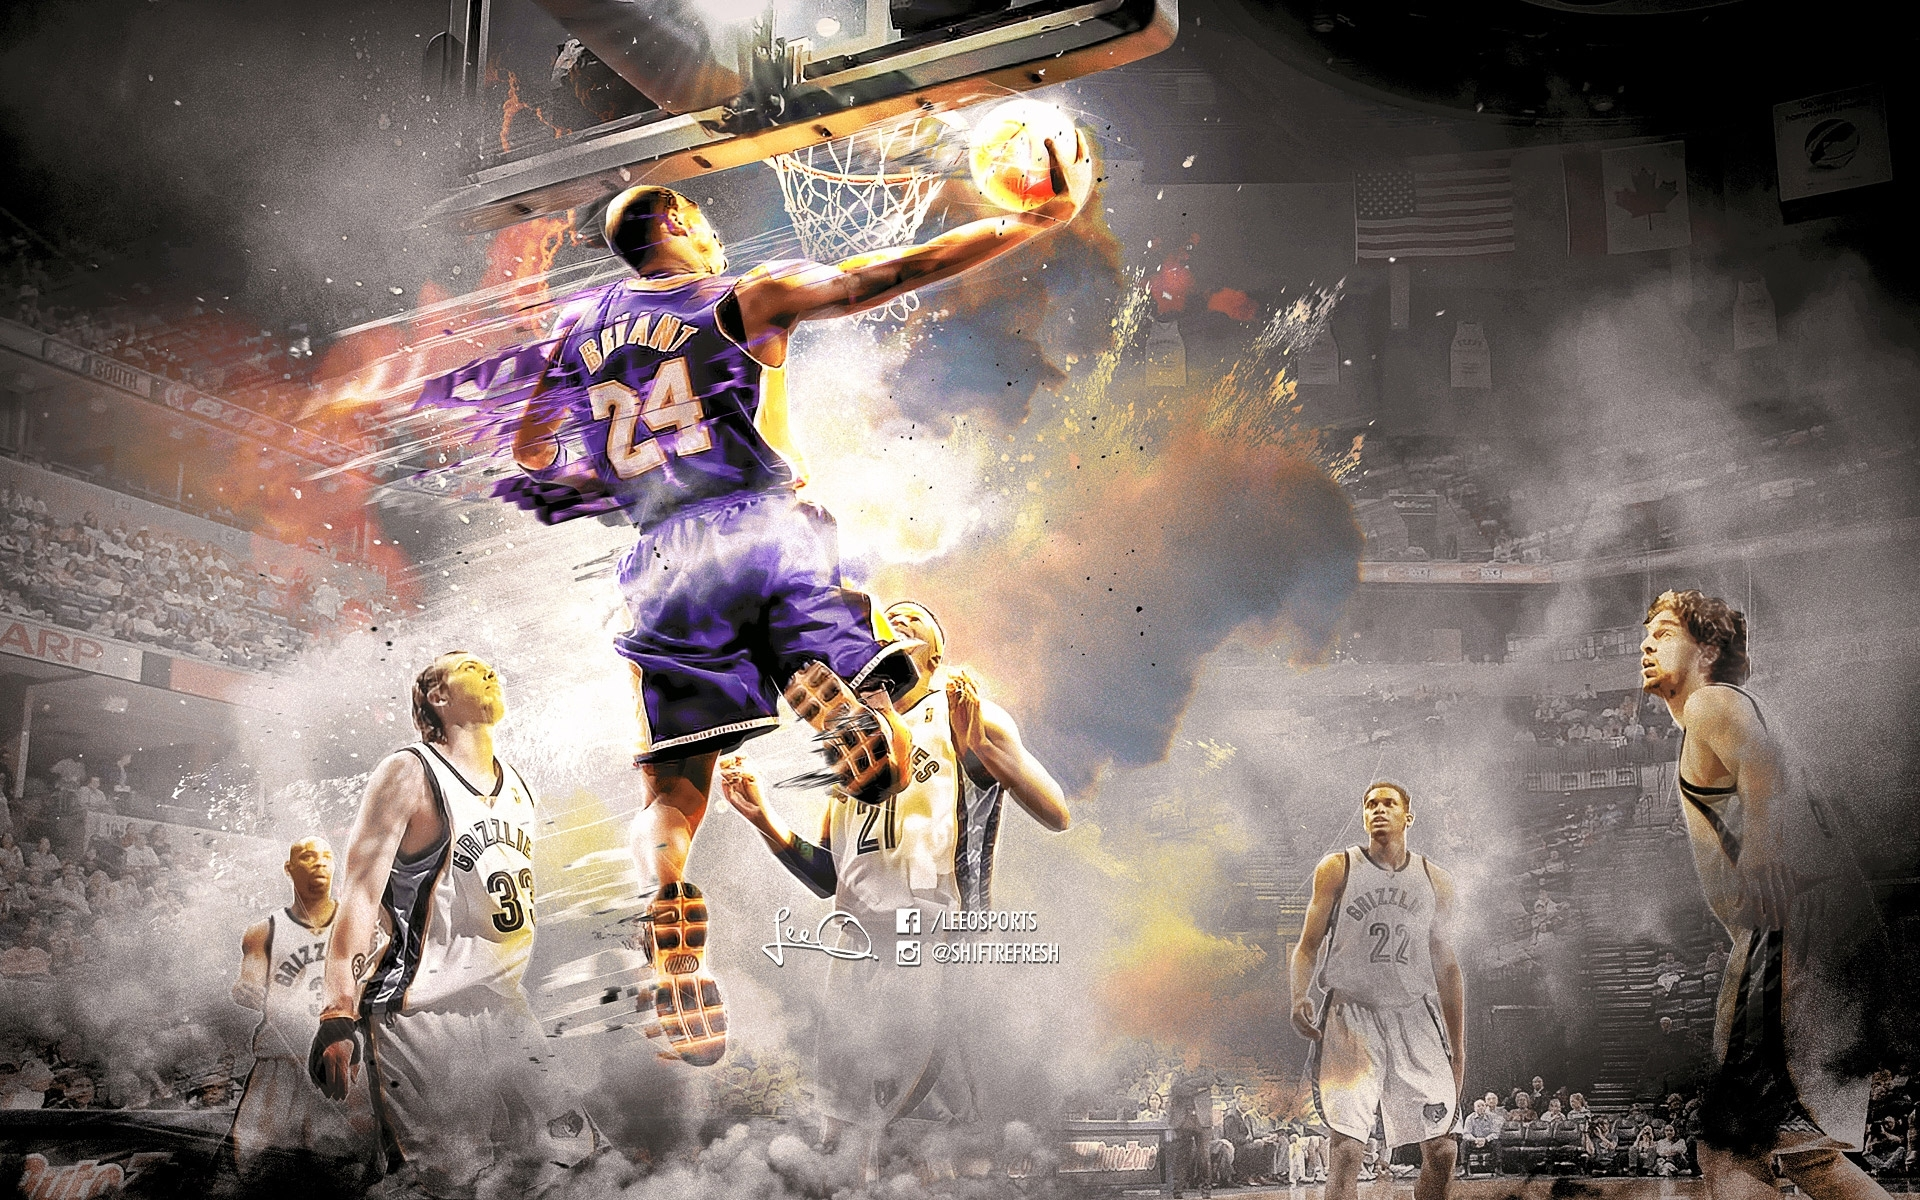 personalized kobe bryant wallpaper simple white decoration dark